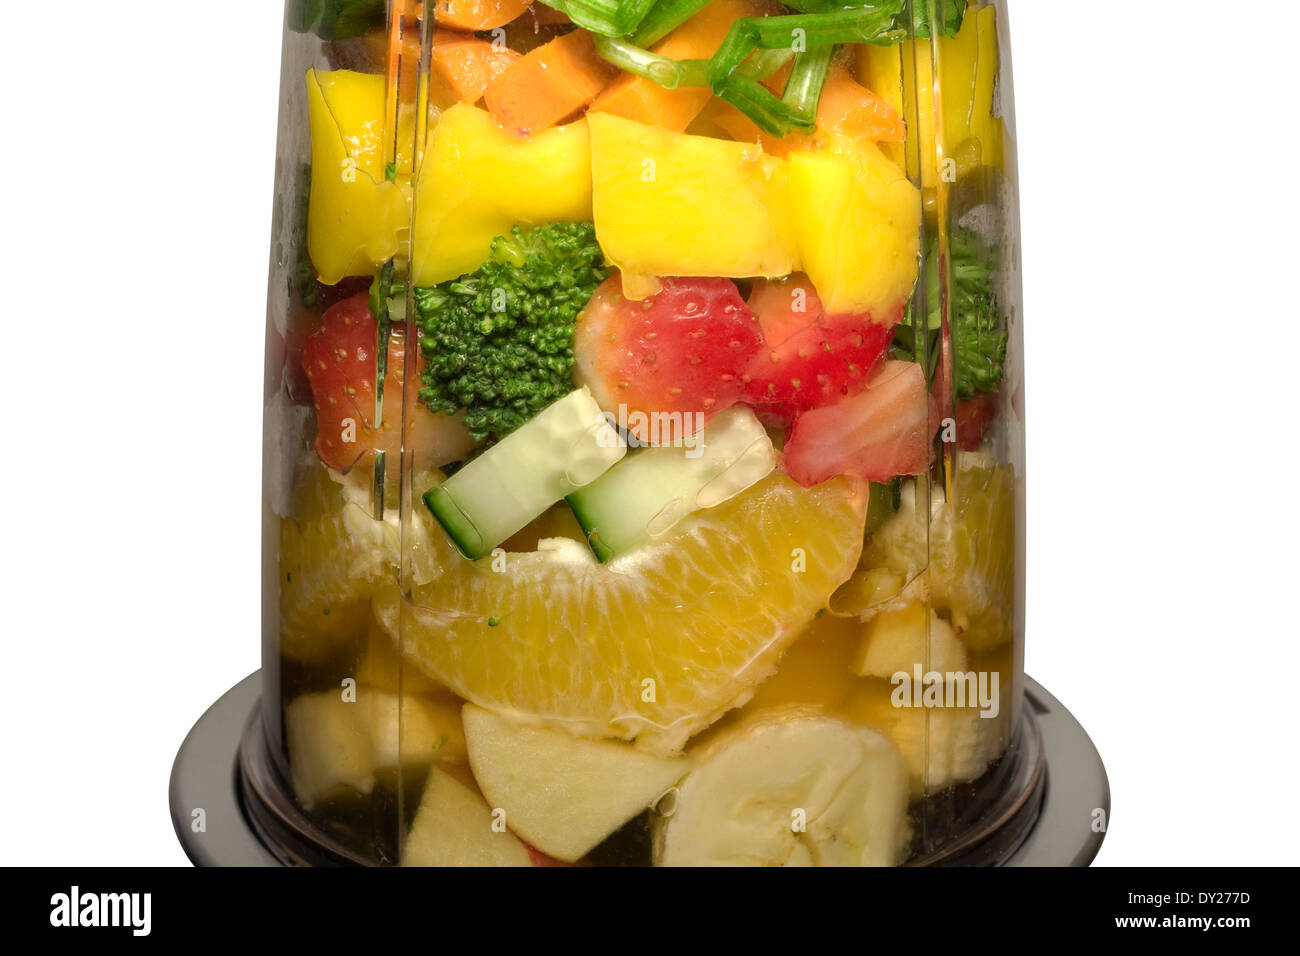 Cut Out. Various Fruits and Vegetables inside of a smoothie machine waiting to be pulverized (f/11) - Stock Image